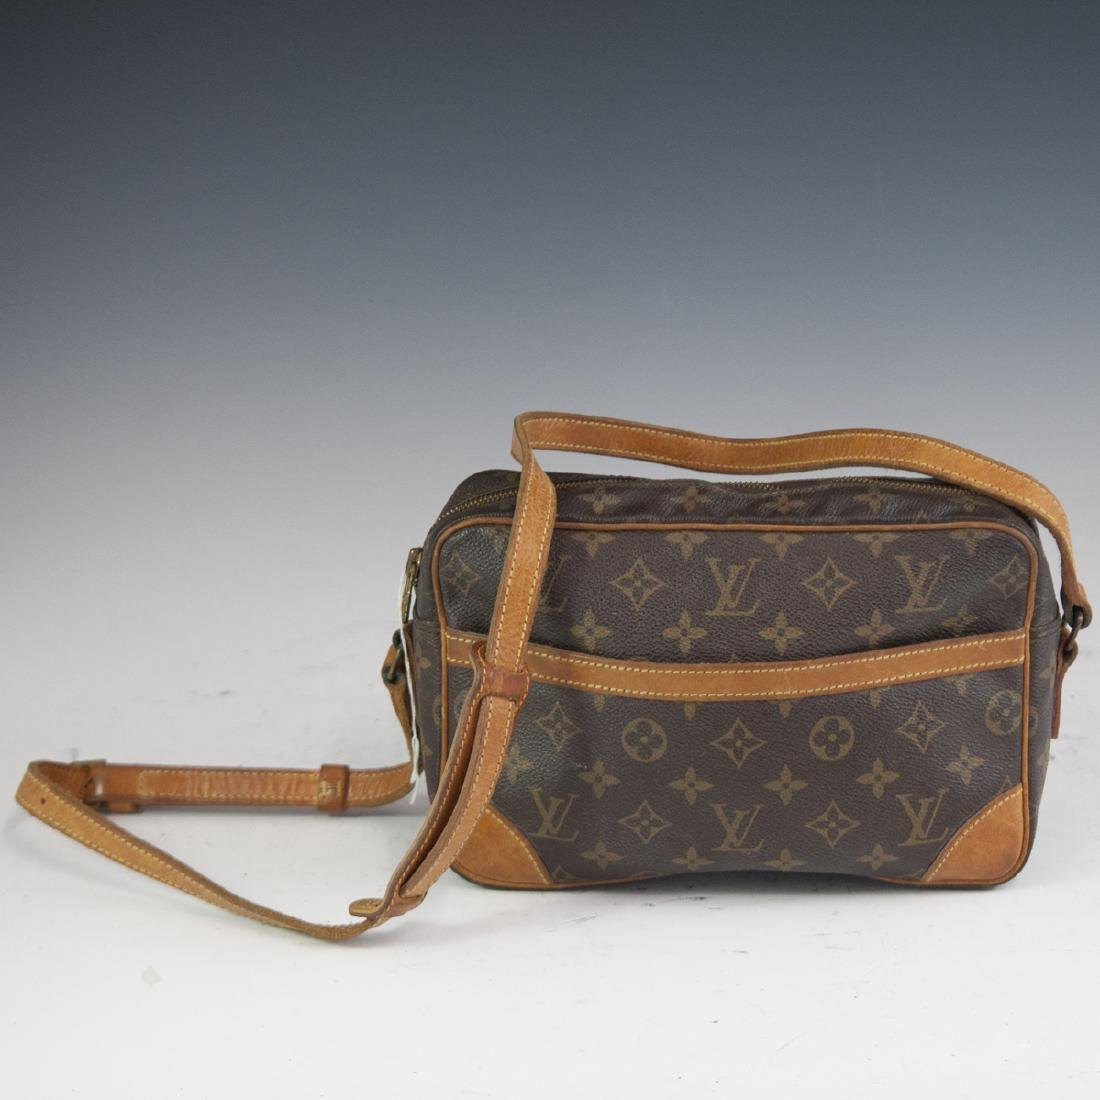 Louis Vuitton Canvas Trocadero Cross Body Bag